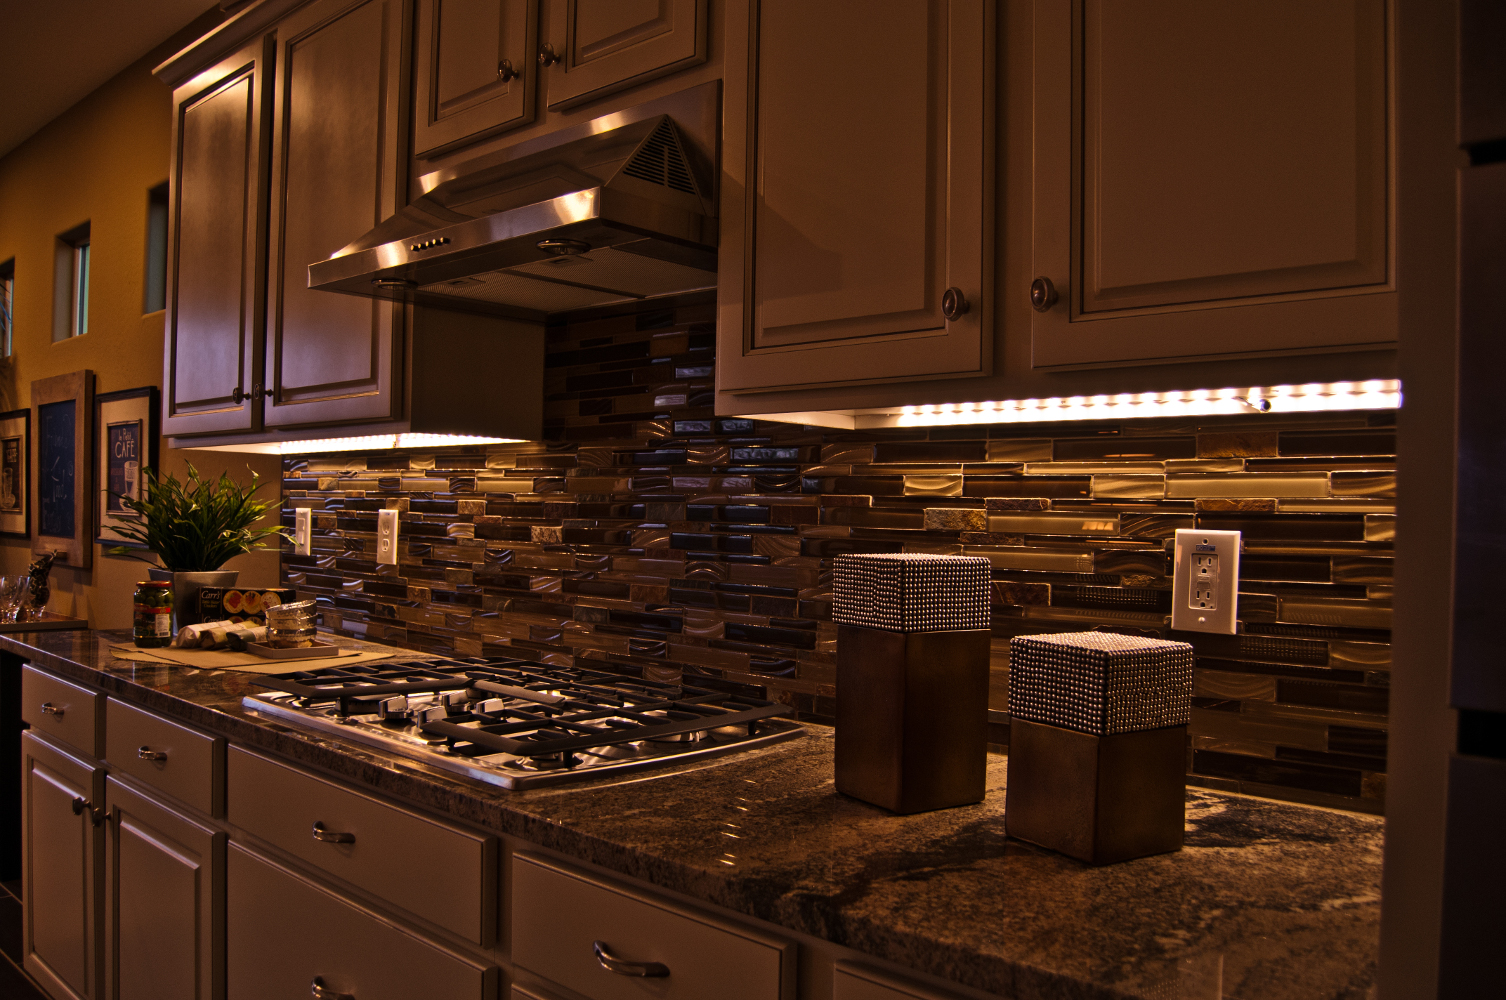 Kitchen under cabinet lighting options the very best undercabinet kitchen under cabinet lighting options under cabinet led lighting strips kitchen options q aloadofball Gallery